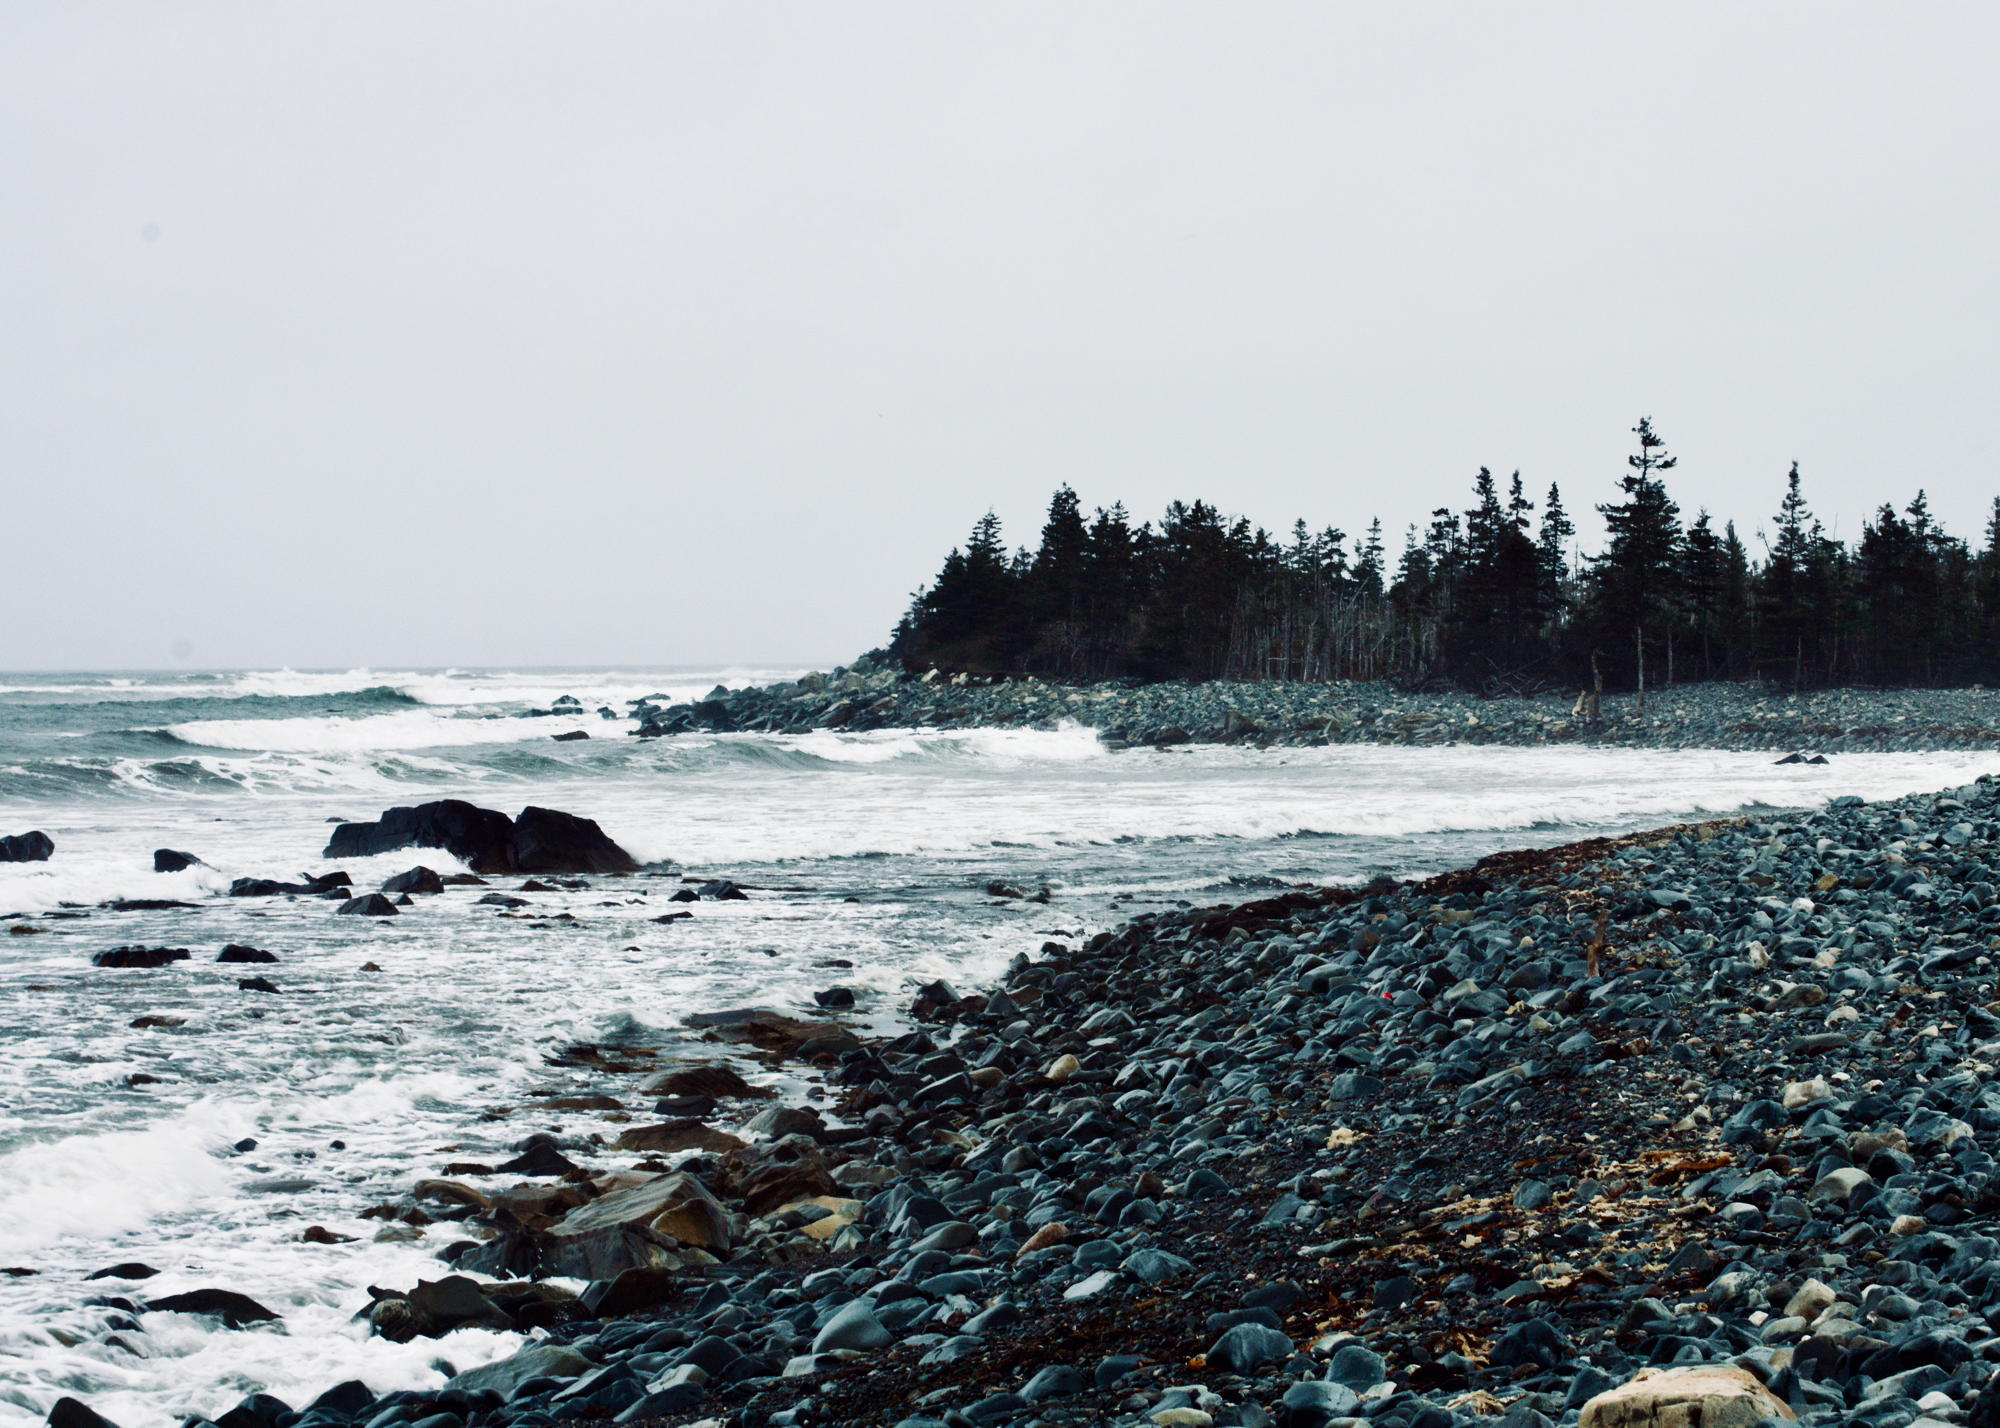 A rocky beach on a cloudy day, with waves crashing into a rocky outcropping. Photo by Reghan Skerry